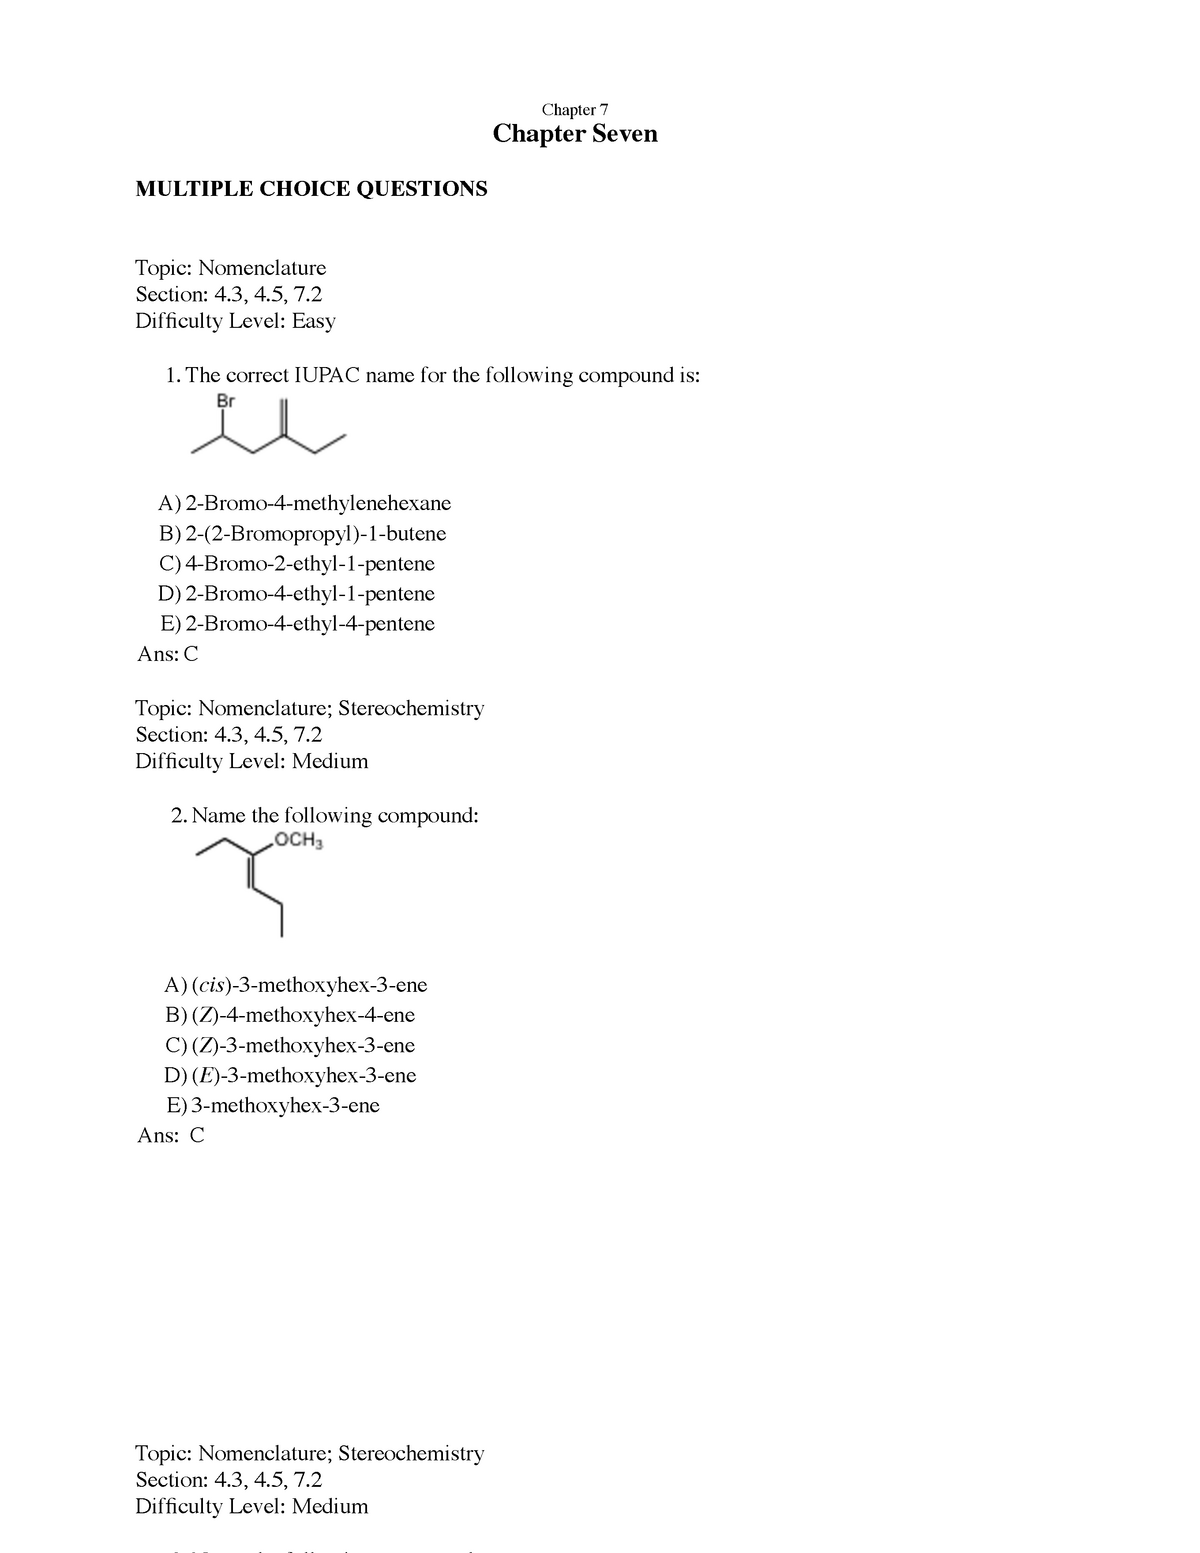 Chapter 7 TEST BANK - Chem 281: General Organic Chemistry I